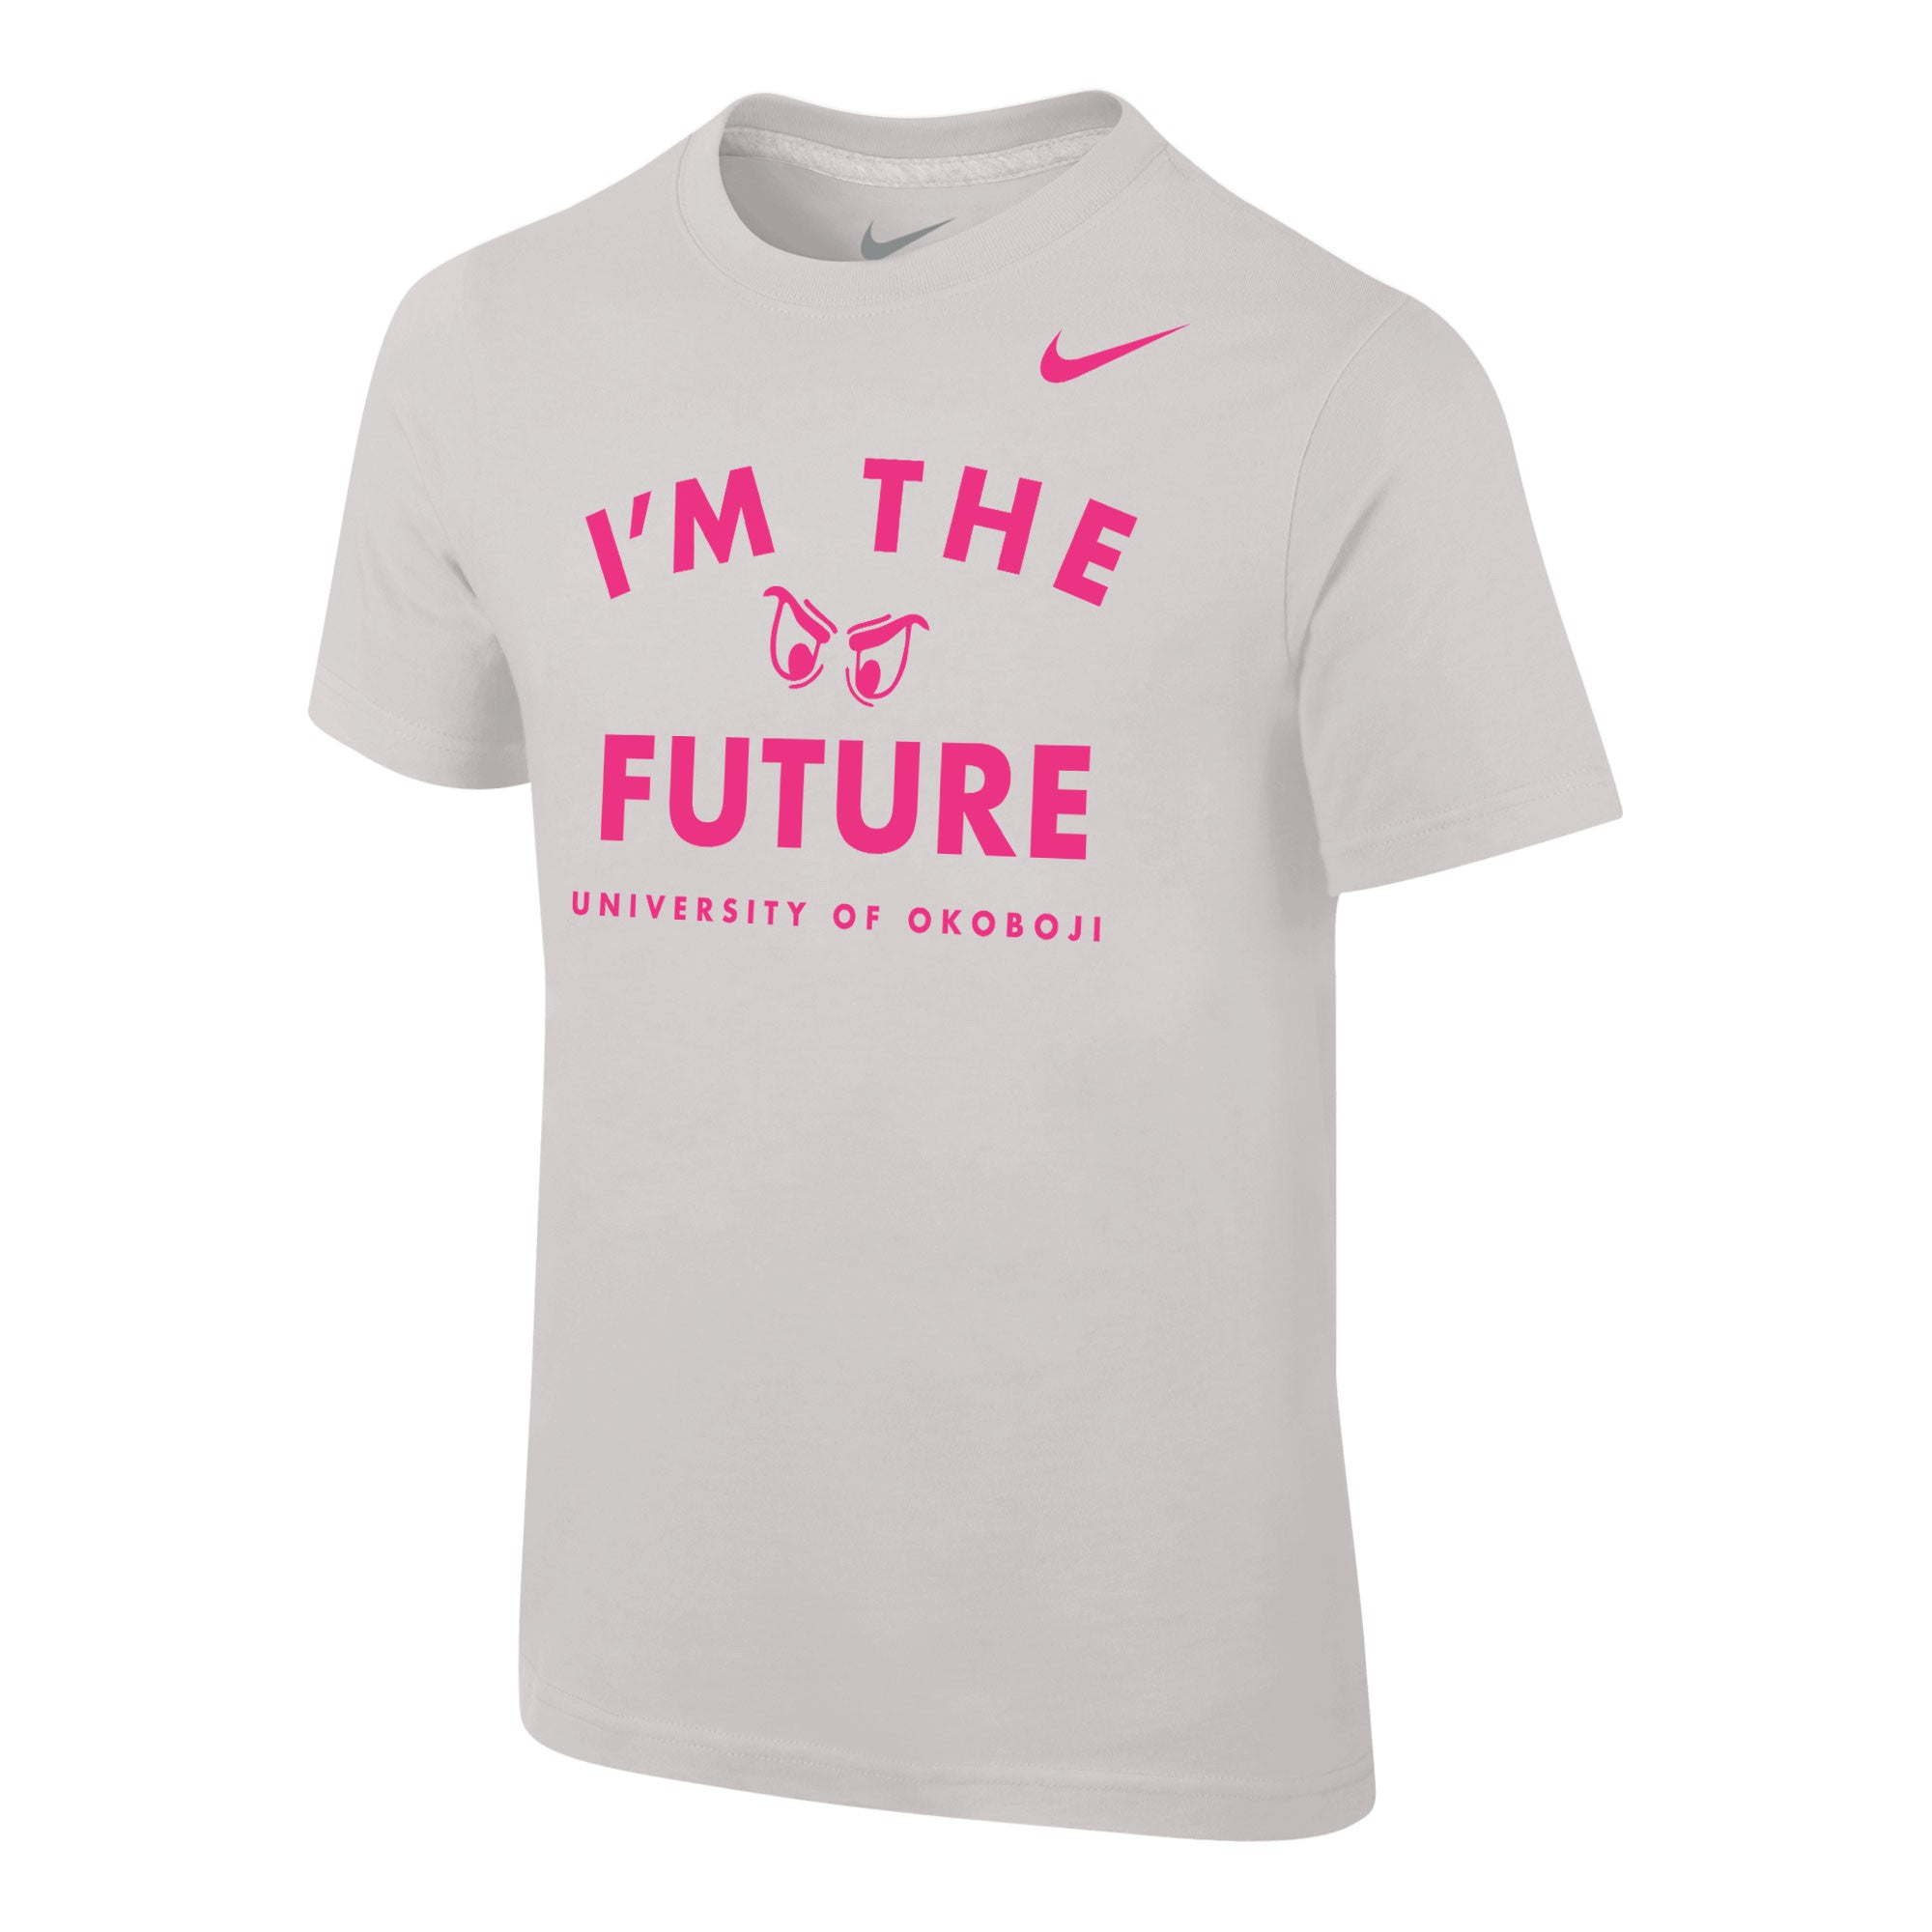 "Youth NIKE ""I'm the Future"" Short Sleeve Tee - White"